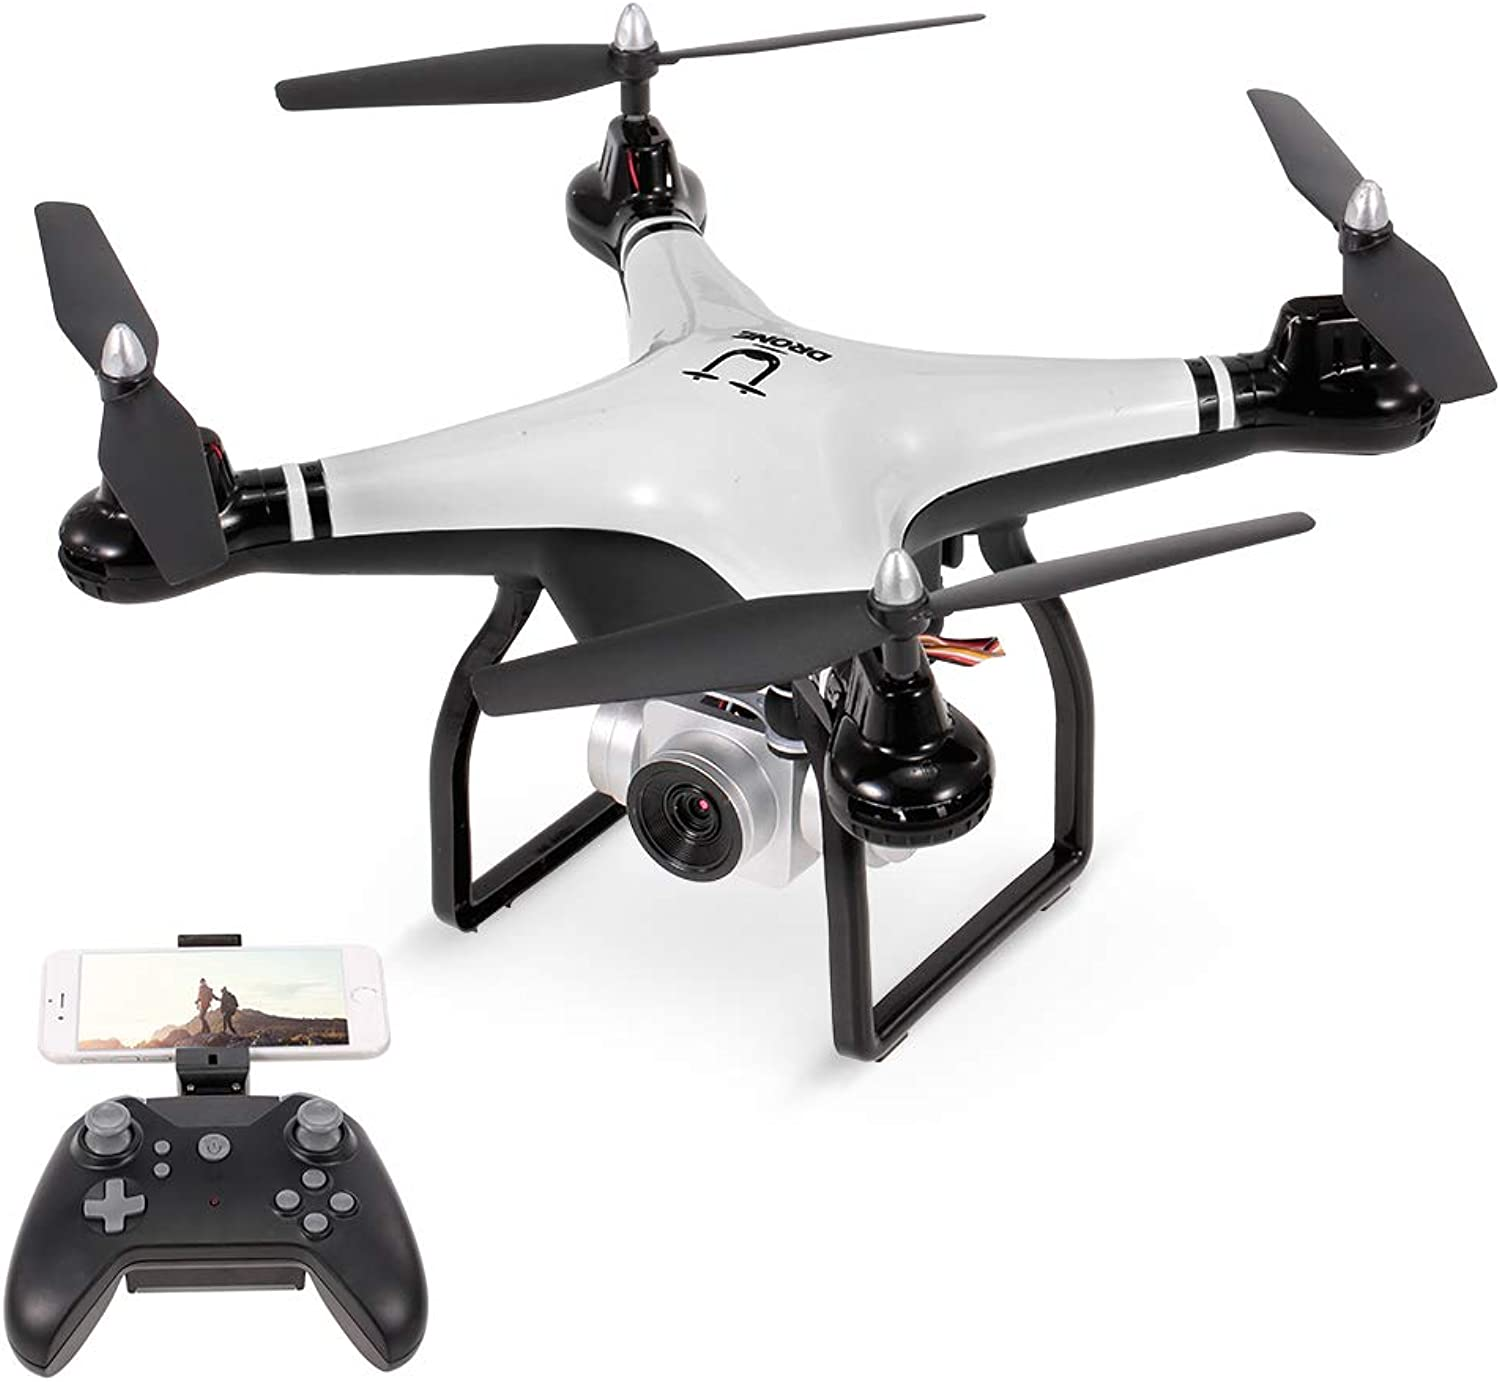 Goolsky Utoghter 69608 90° Adjustable Angle 720P Camera Wifi FPV 22mins Flying Time Drone Altitude Hold One Key Return Voice Control RC Drone Quadcopter Kids Gift Toy